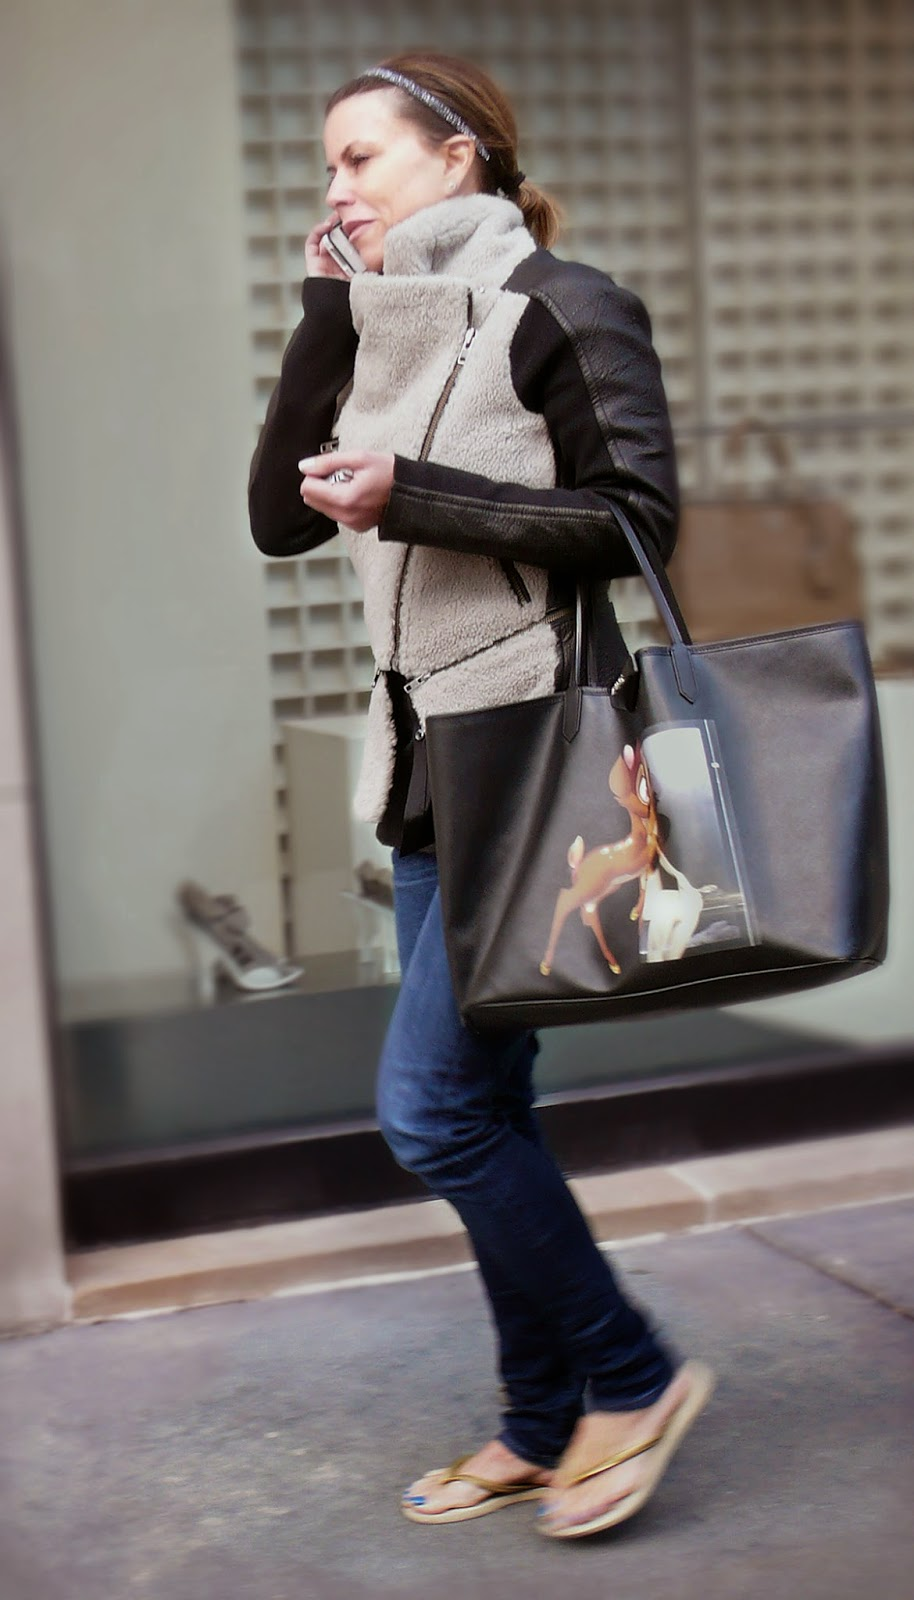 b992a6a1de Bambi spotted on Oak Street. Cartoon meets high art in Givenchy s Bambi  Antigona Tote in coated canvas